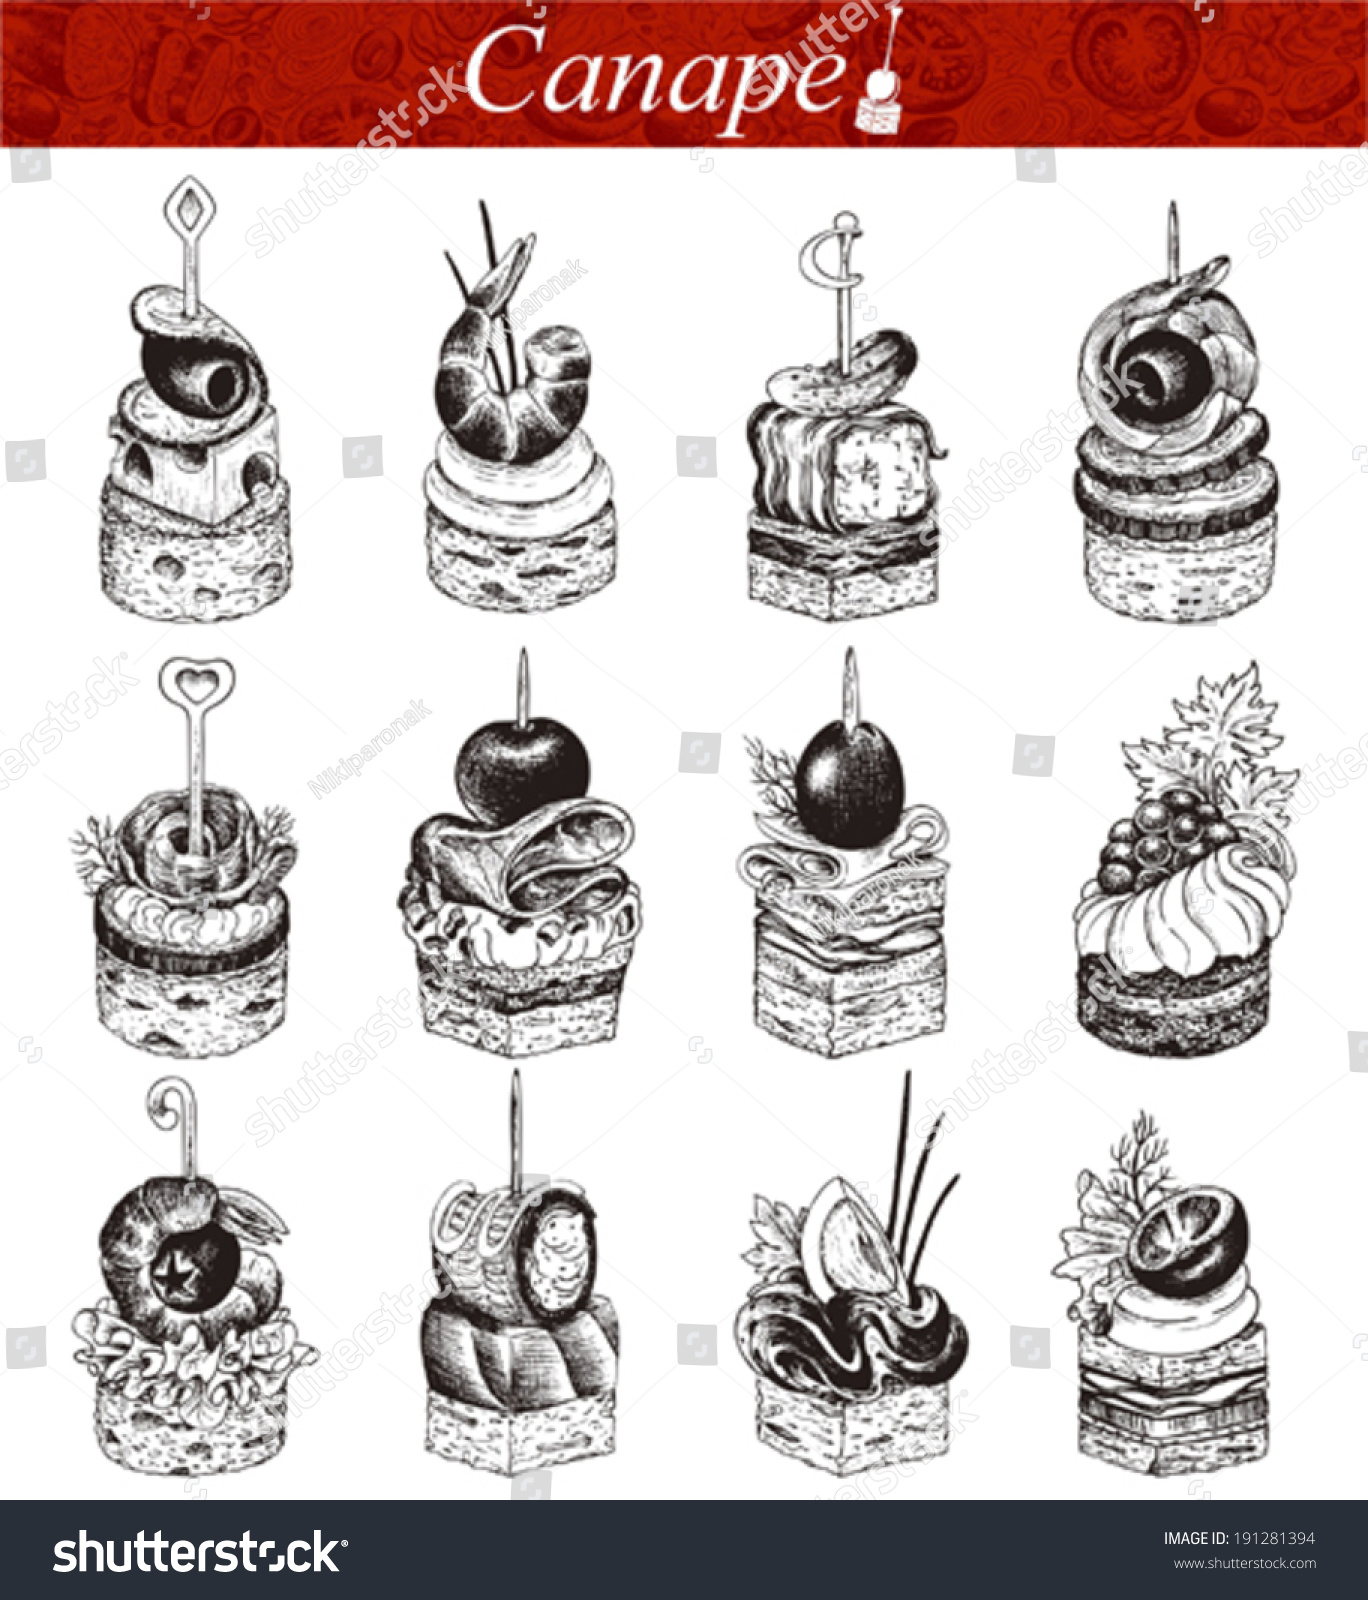 Canape vector collection handdrawn illustration stock for Canape vector download